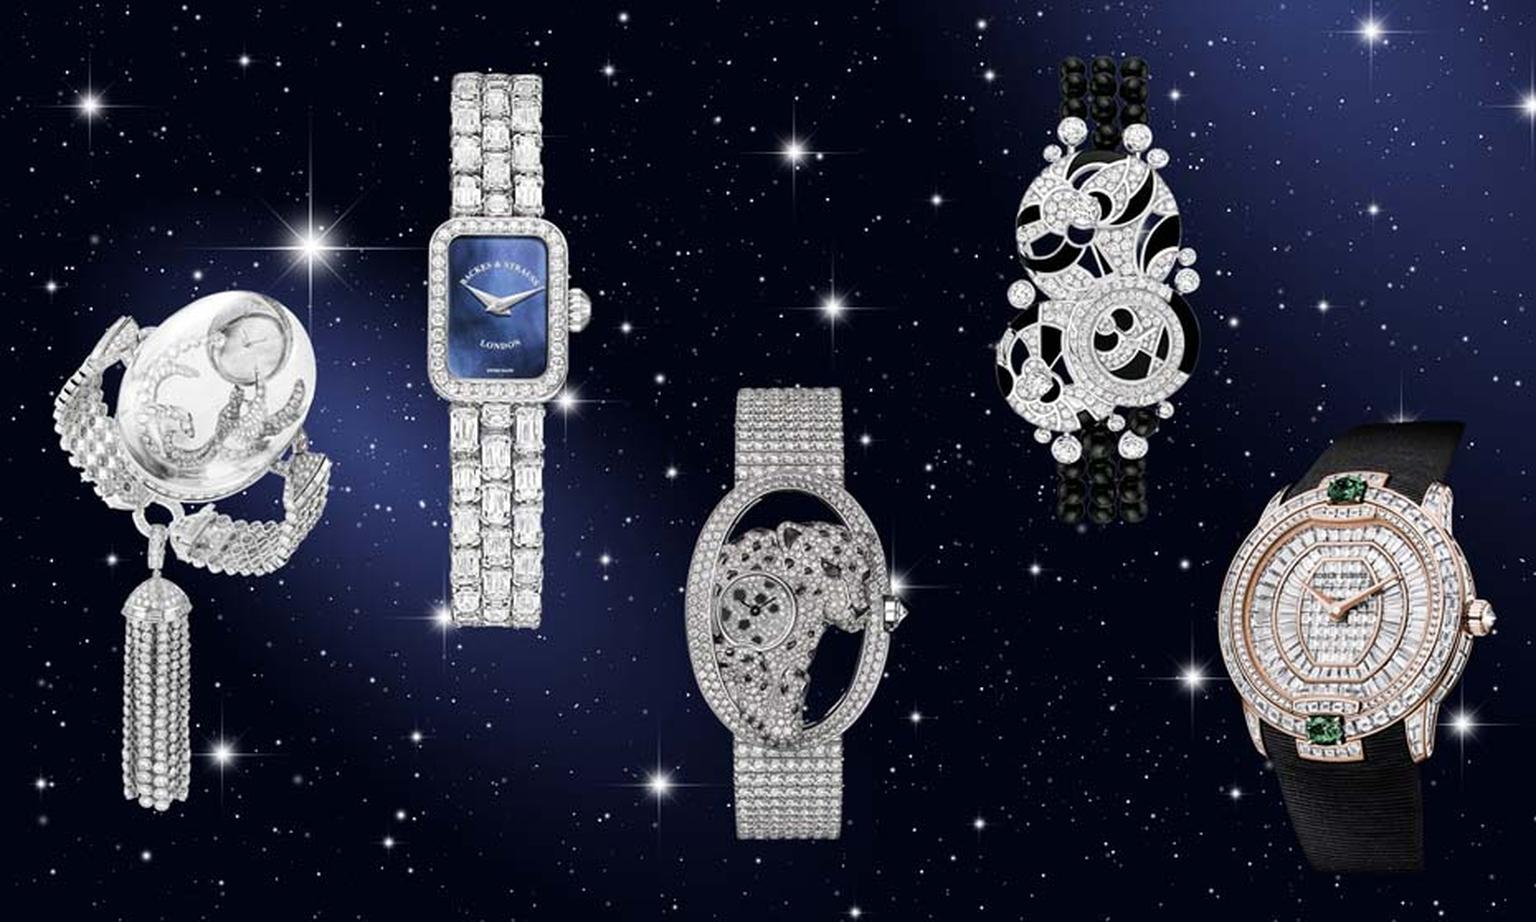 Light up the longest nights of the year with these dazzling diamond high jewellery watches from Boucheron, Backes & Strauss, Cartier, Chanel and Roger Dubuis.